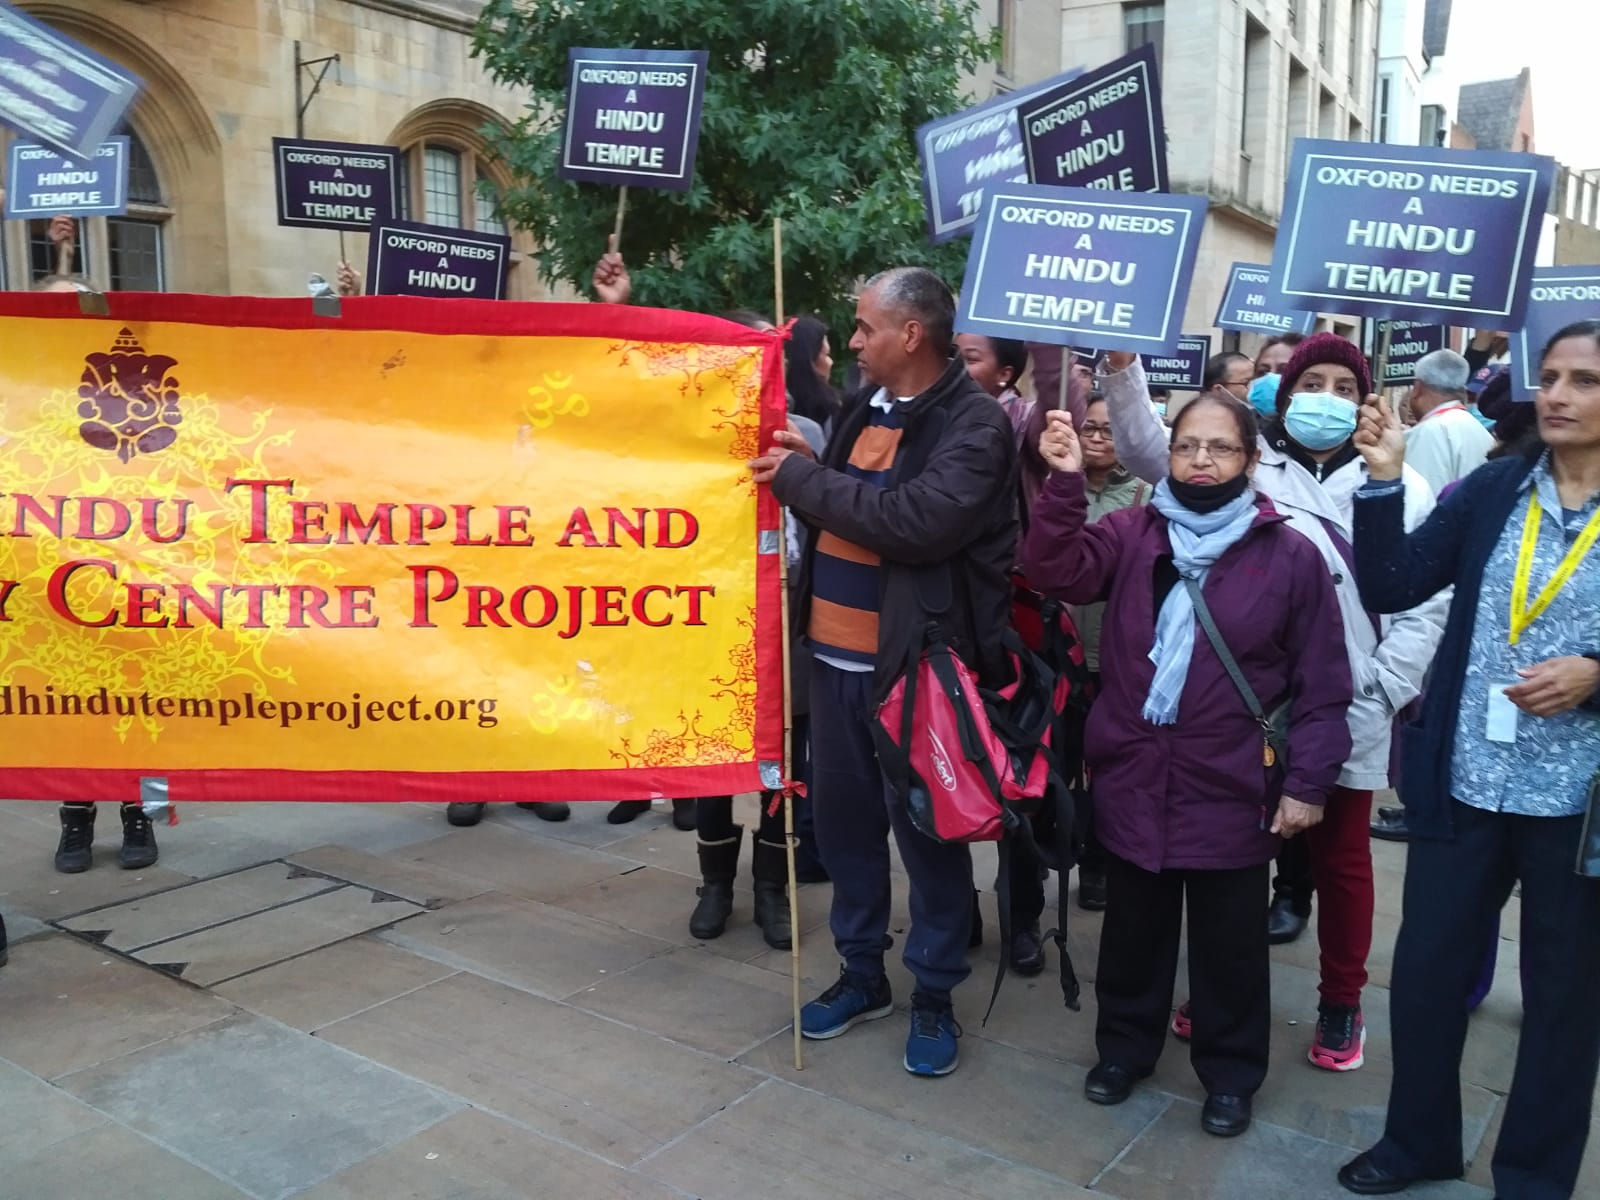 Protestors from the Oxford Hindu Community protesting with signs and banners demanding a Hindu Temple and Community Centre.